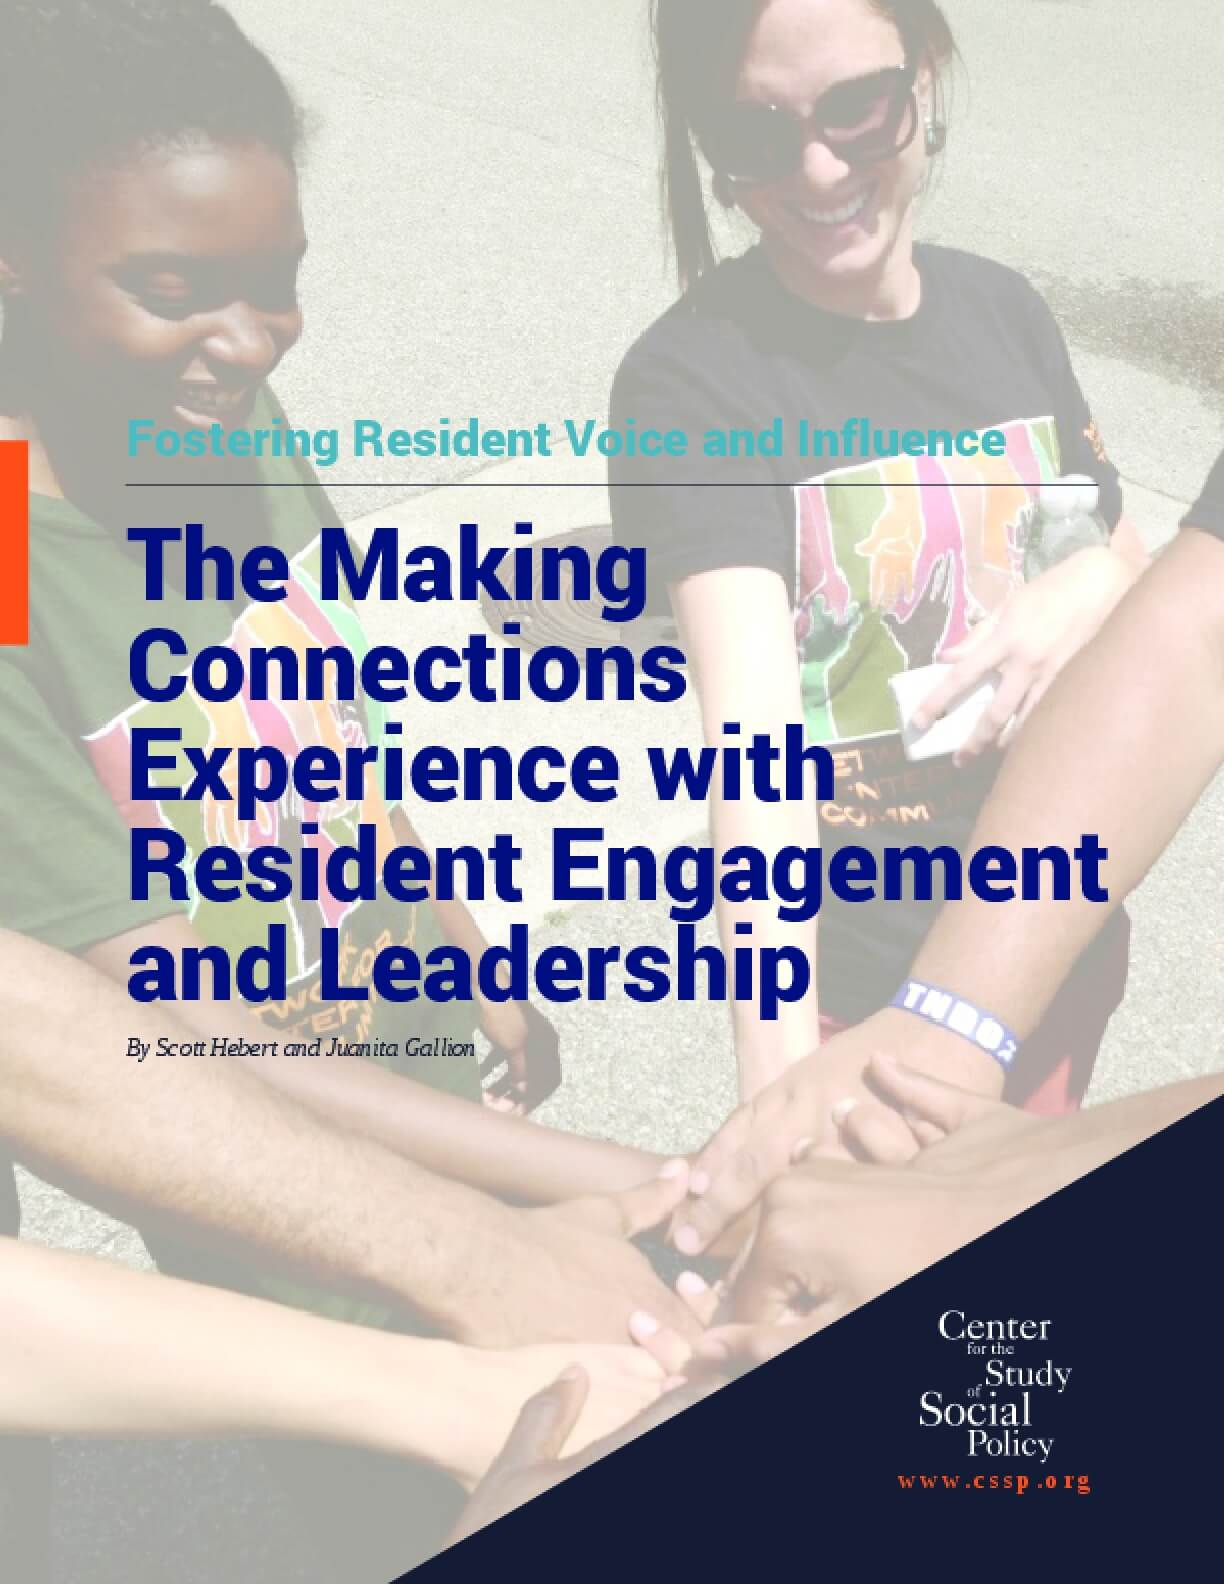 Fostering Resident Voice and Influence: The Making Connections Experience with Resident Engagement and Leadership